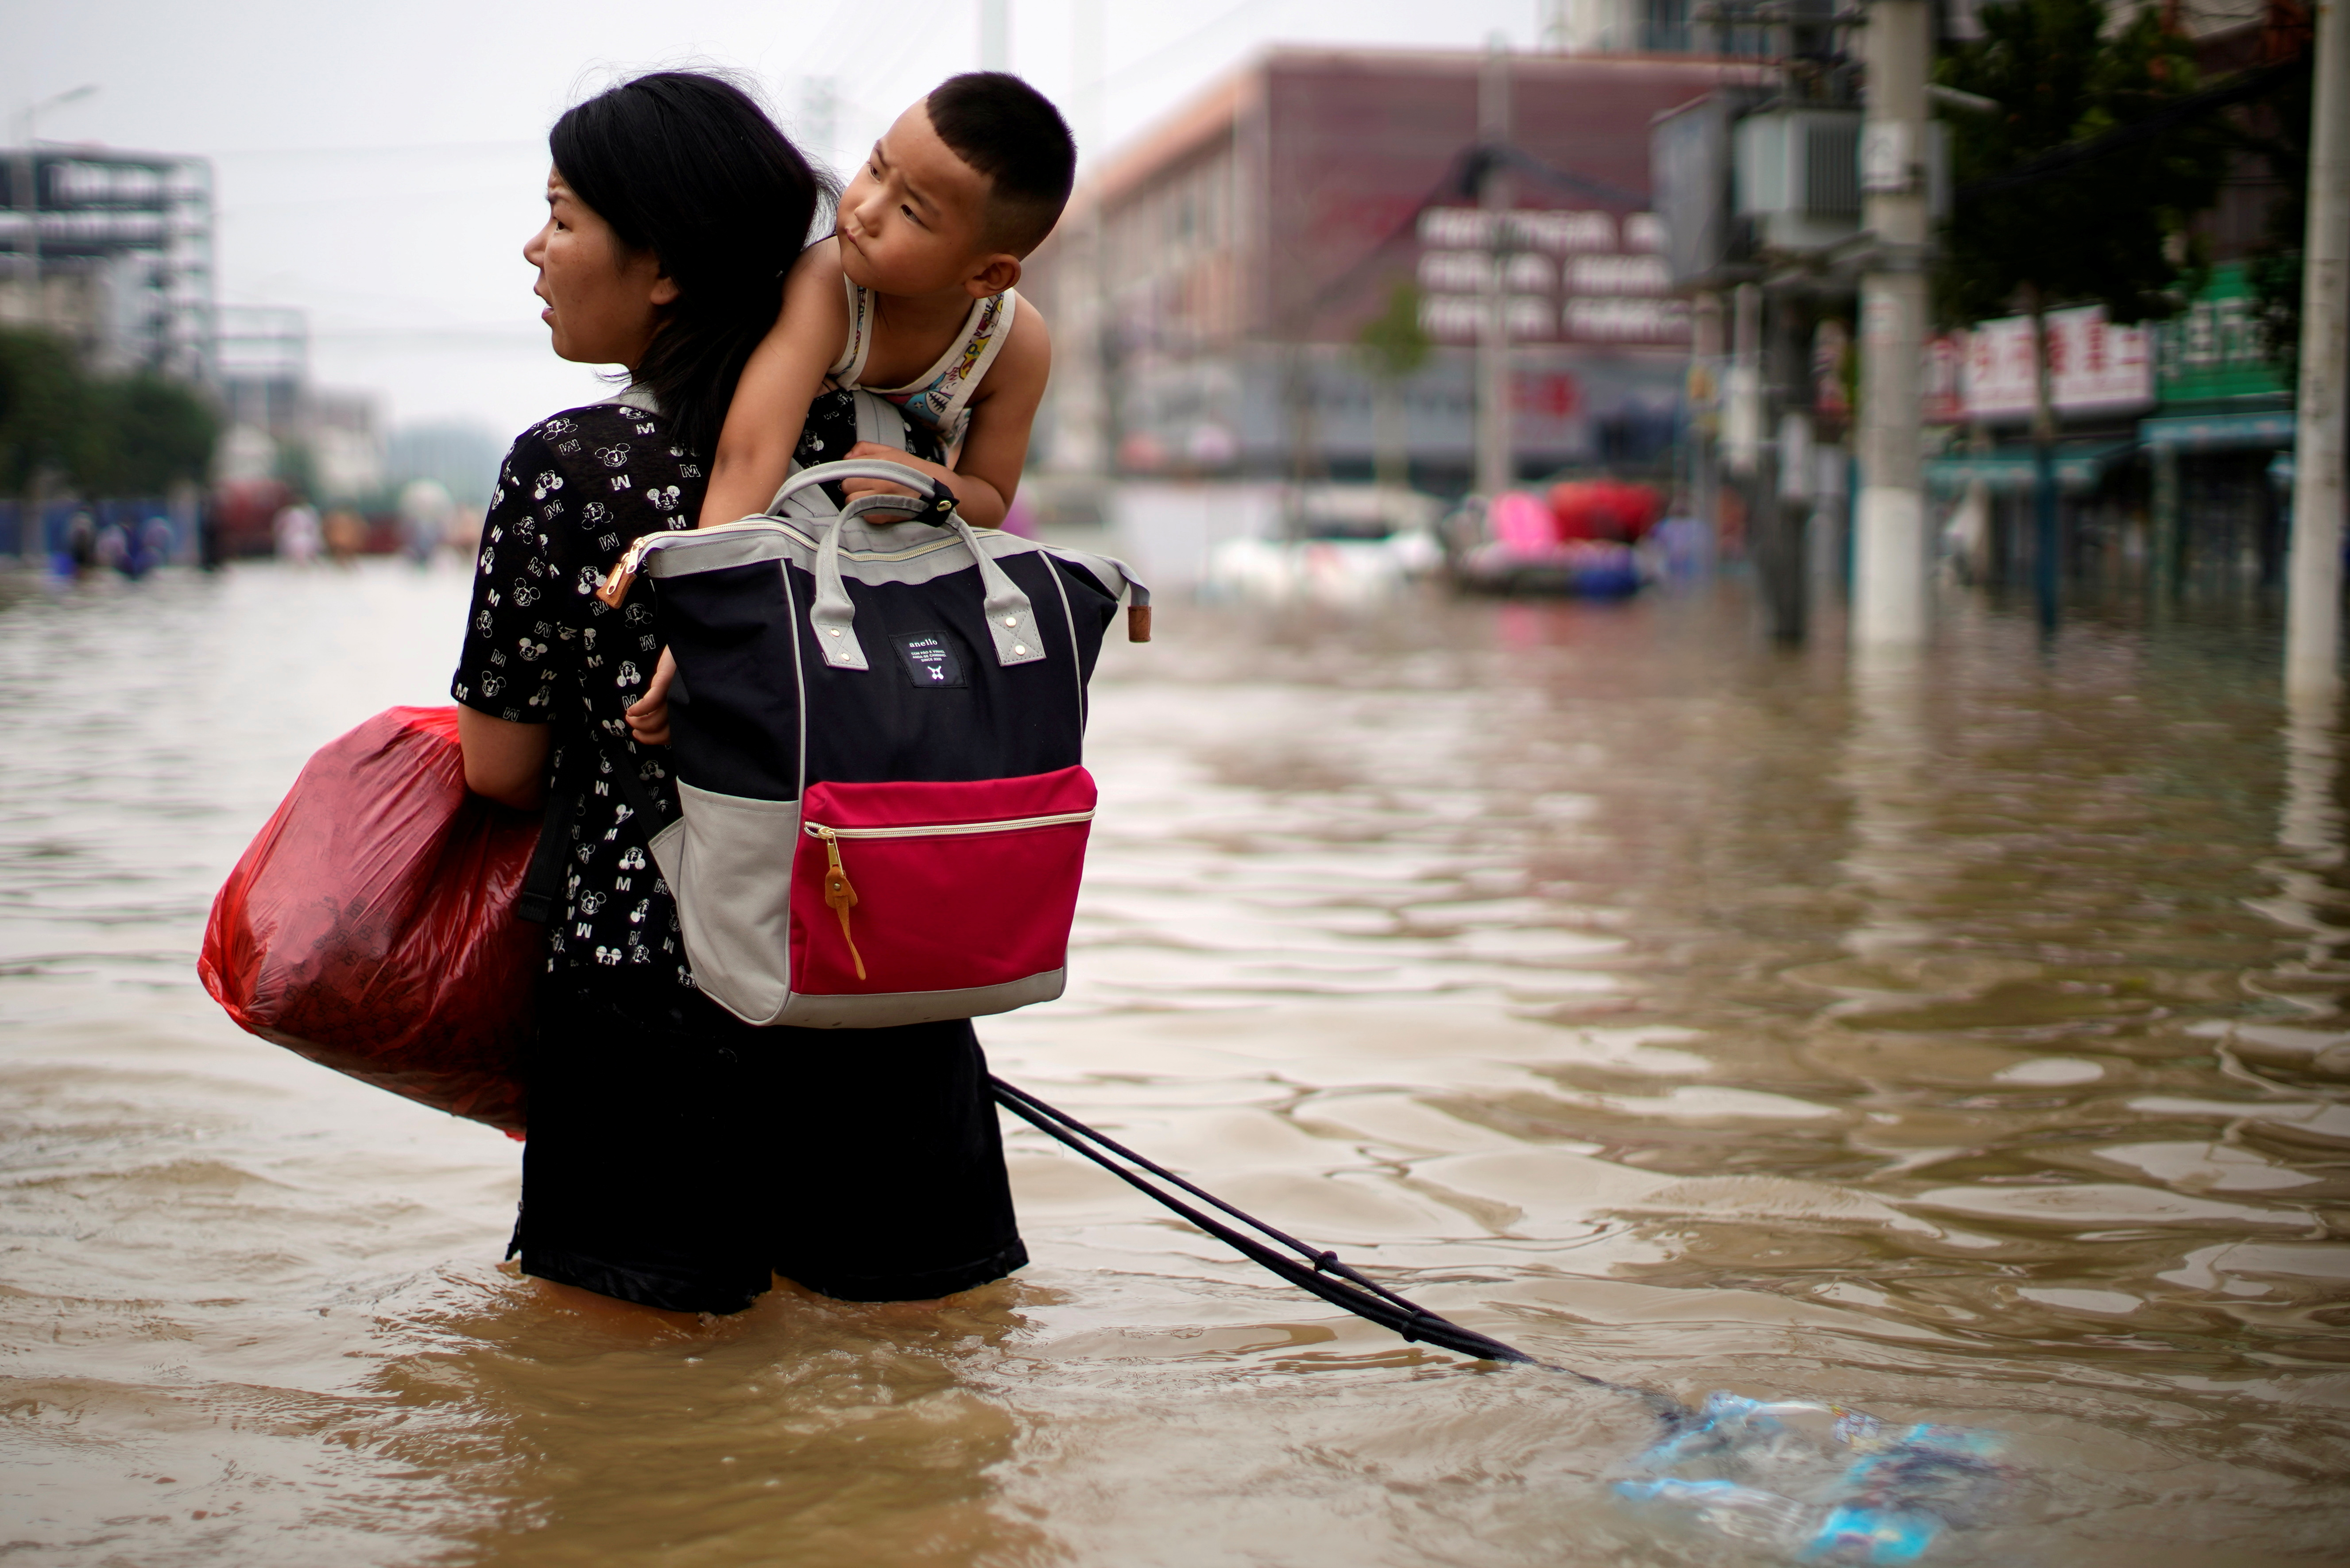 A woman carrying a child and belongings wades through floodwaters following heavy rainfall in Zhengzhou, Henan province, China July 23, 2021. REUTERS/Aly Song/File Photo